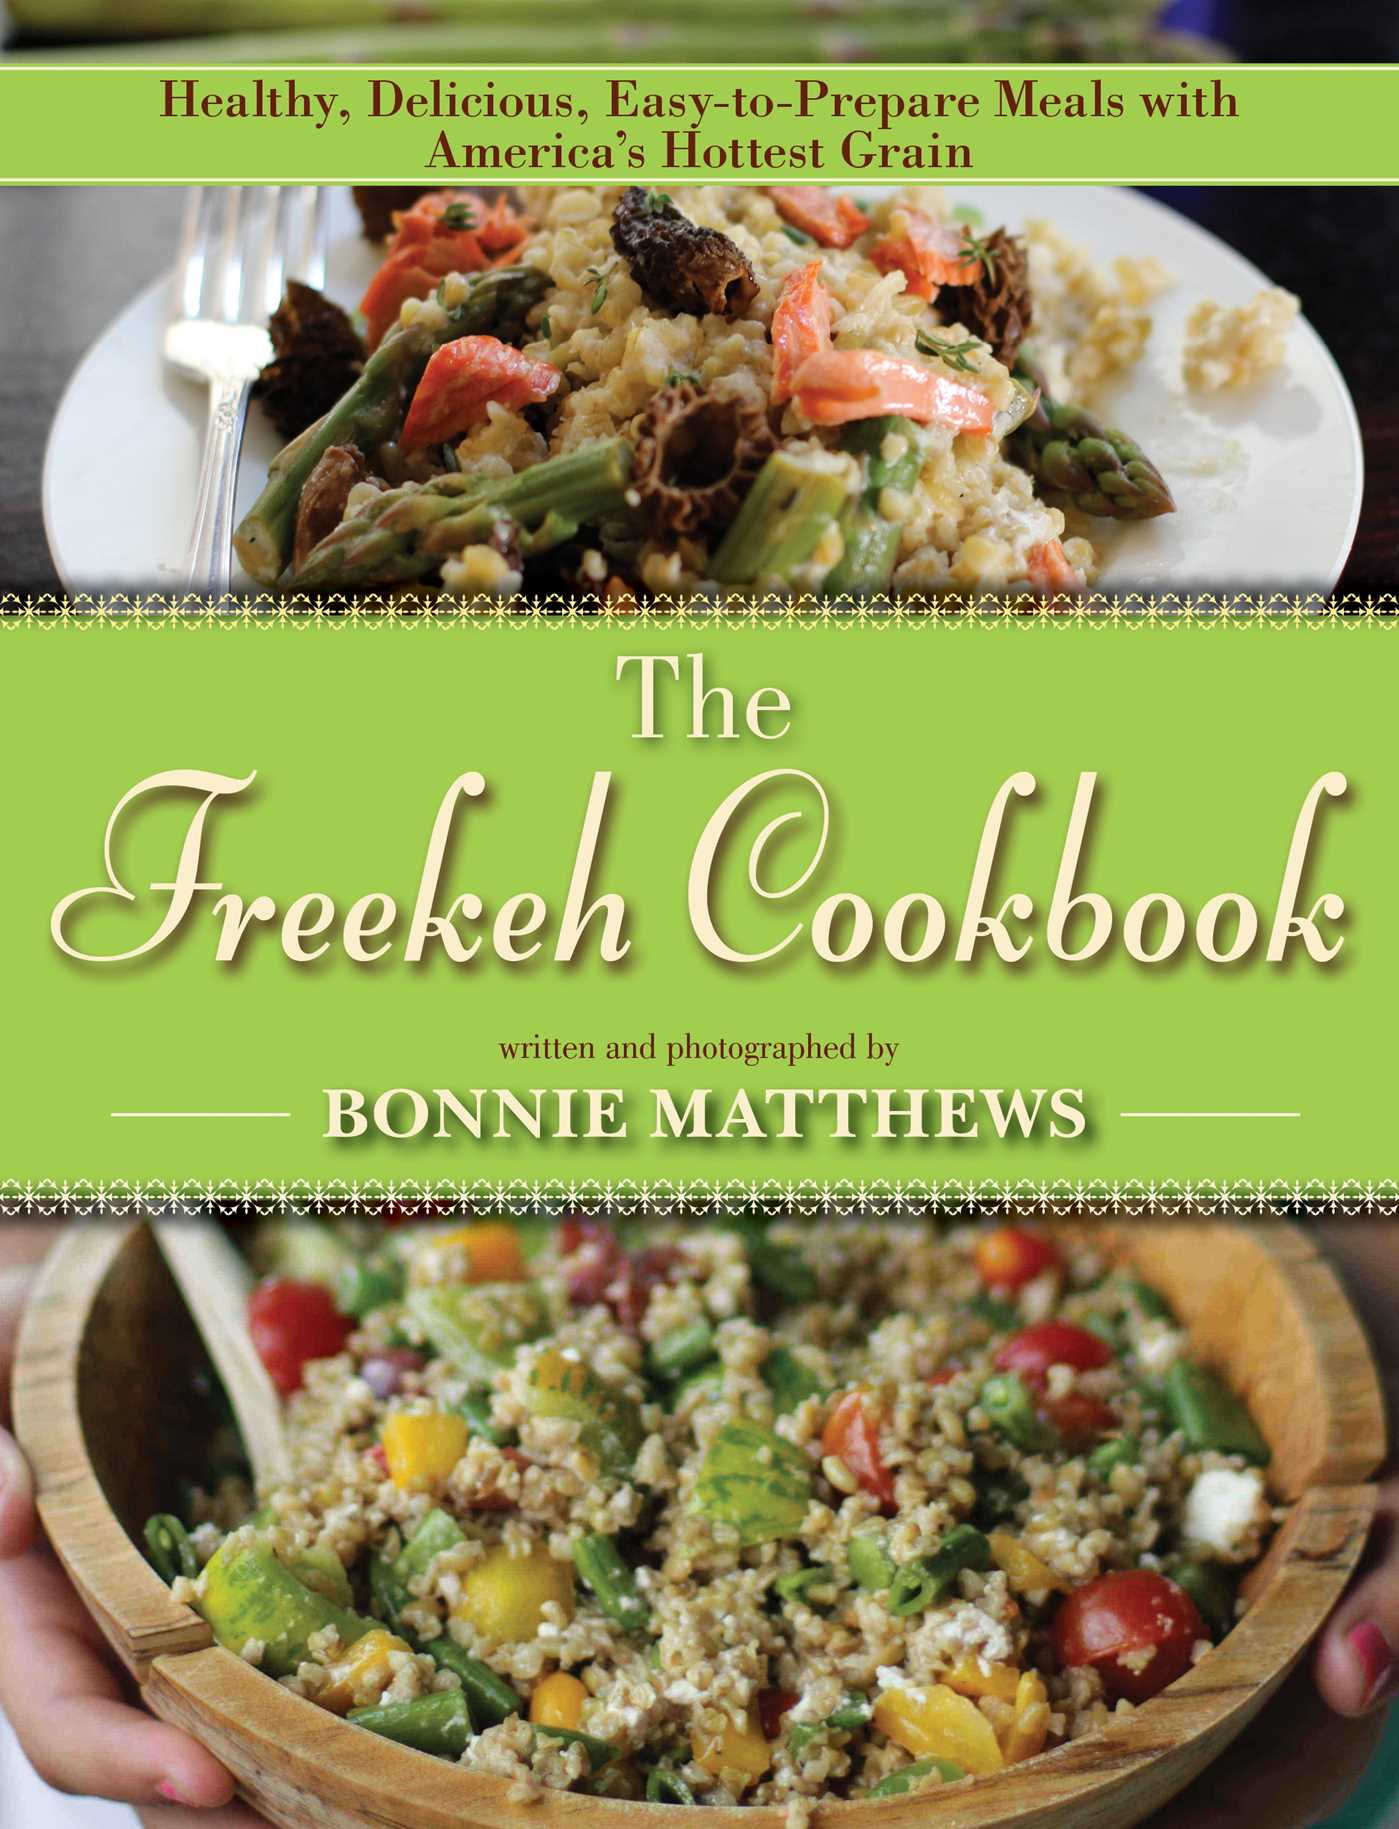 Book Cover Image (jpg): The Freekeh Cookbook